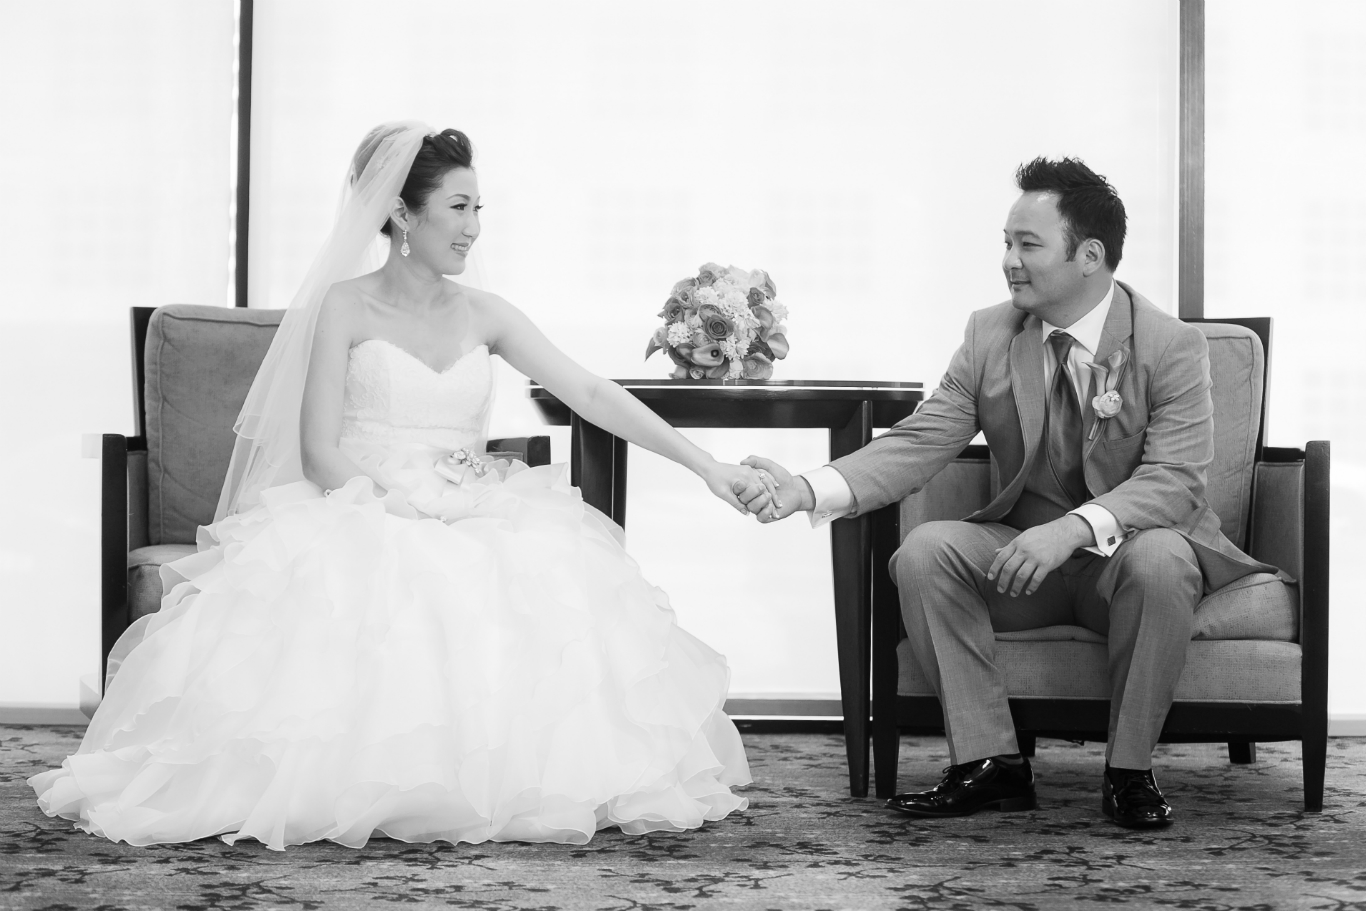 rd-westin-costa-mesa-wedding-p-2501155517-o